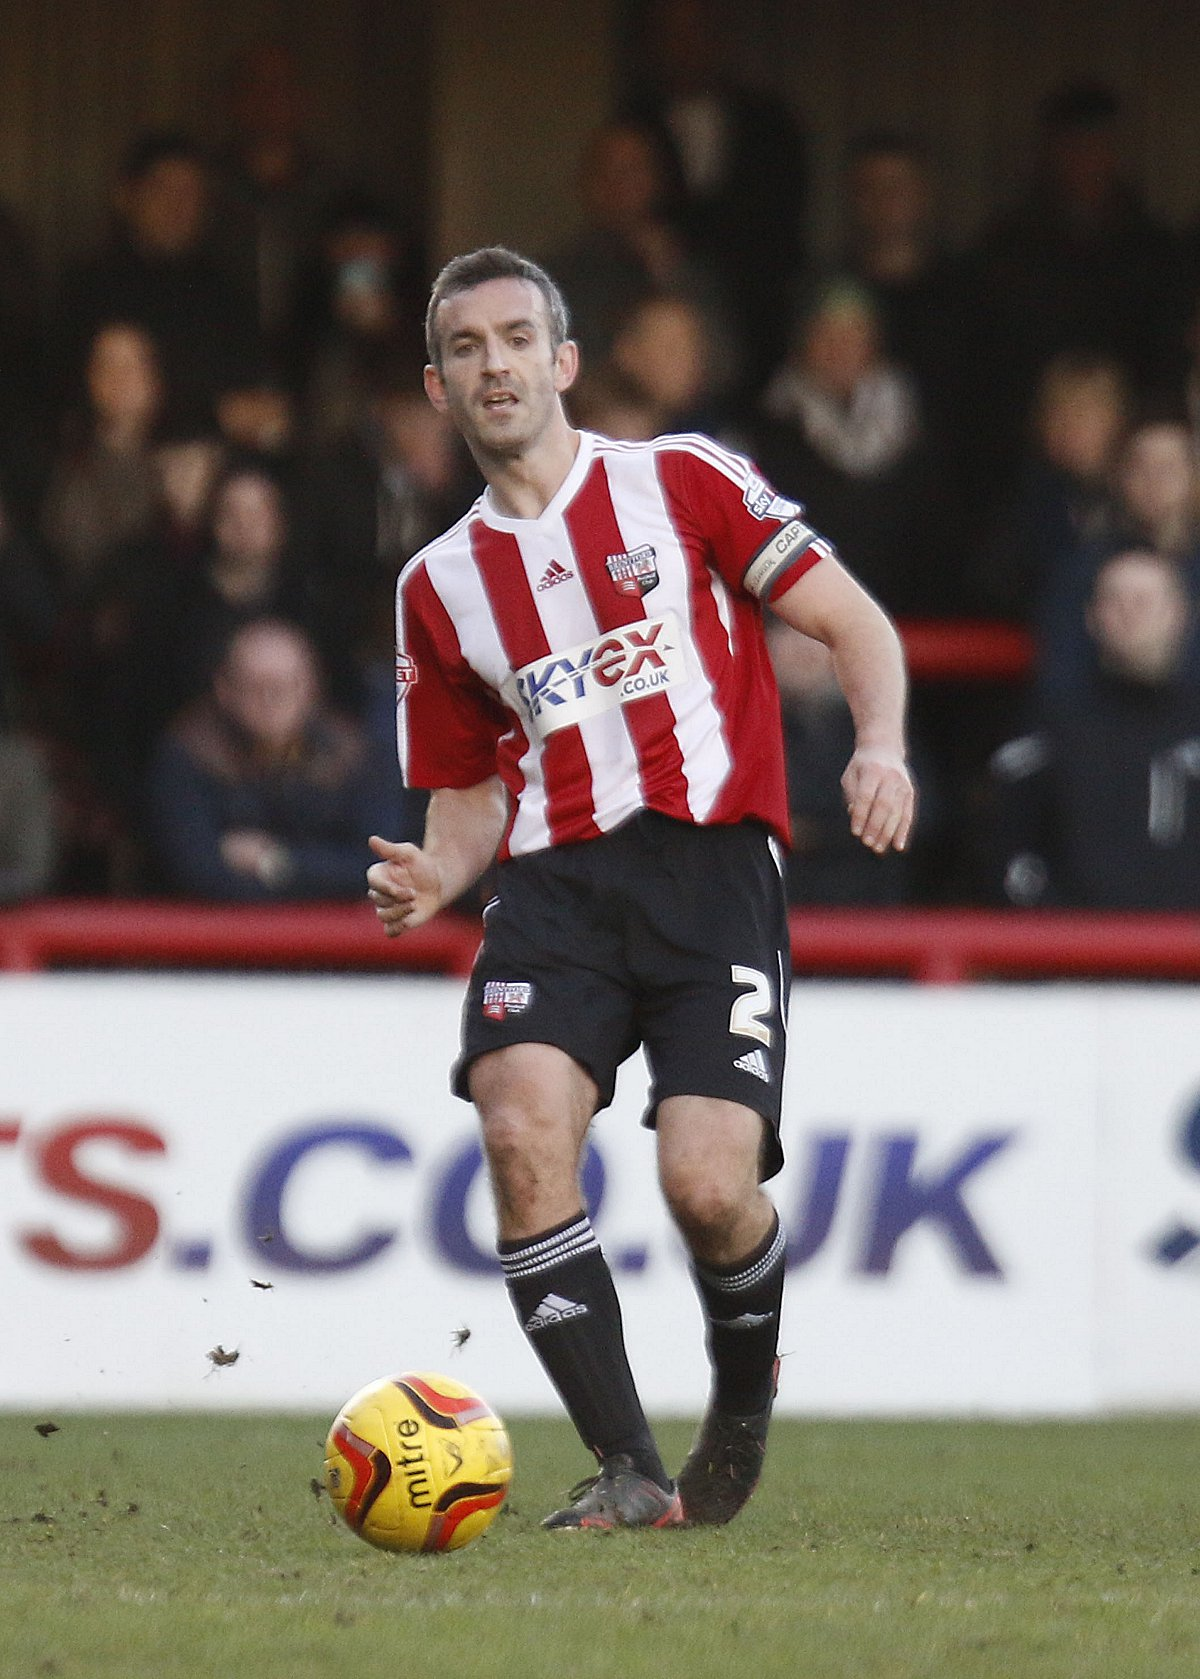 Captain fantastic: Brentford skipper Kevin O'Connor is a rare outing against Port Vale on Saturday